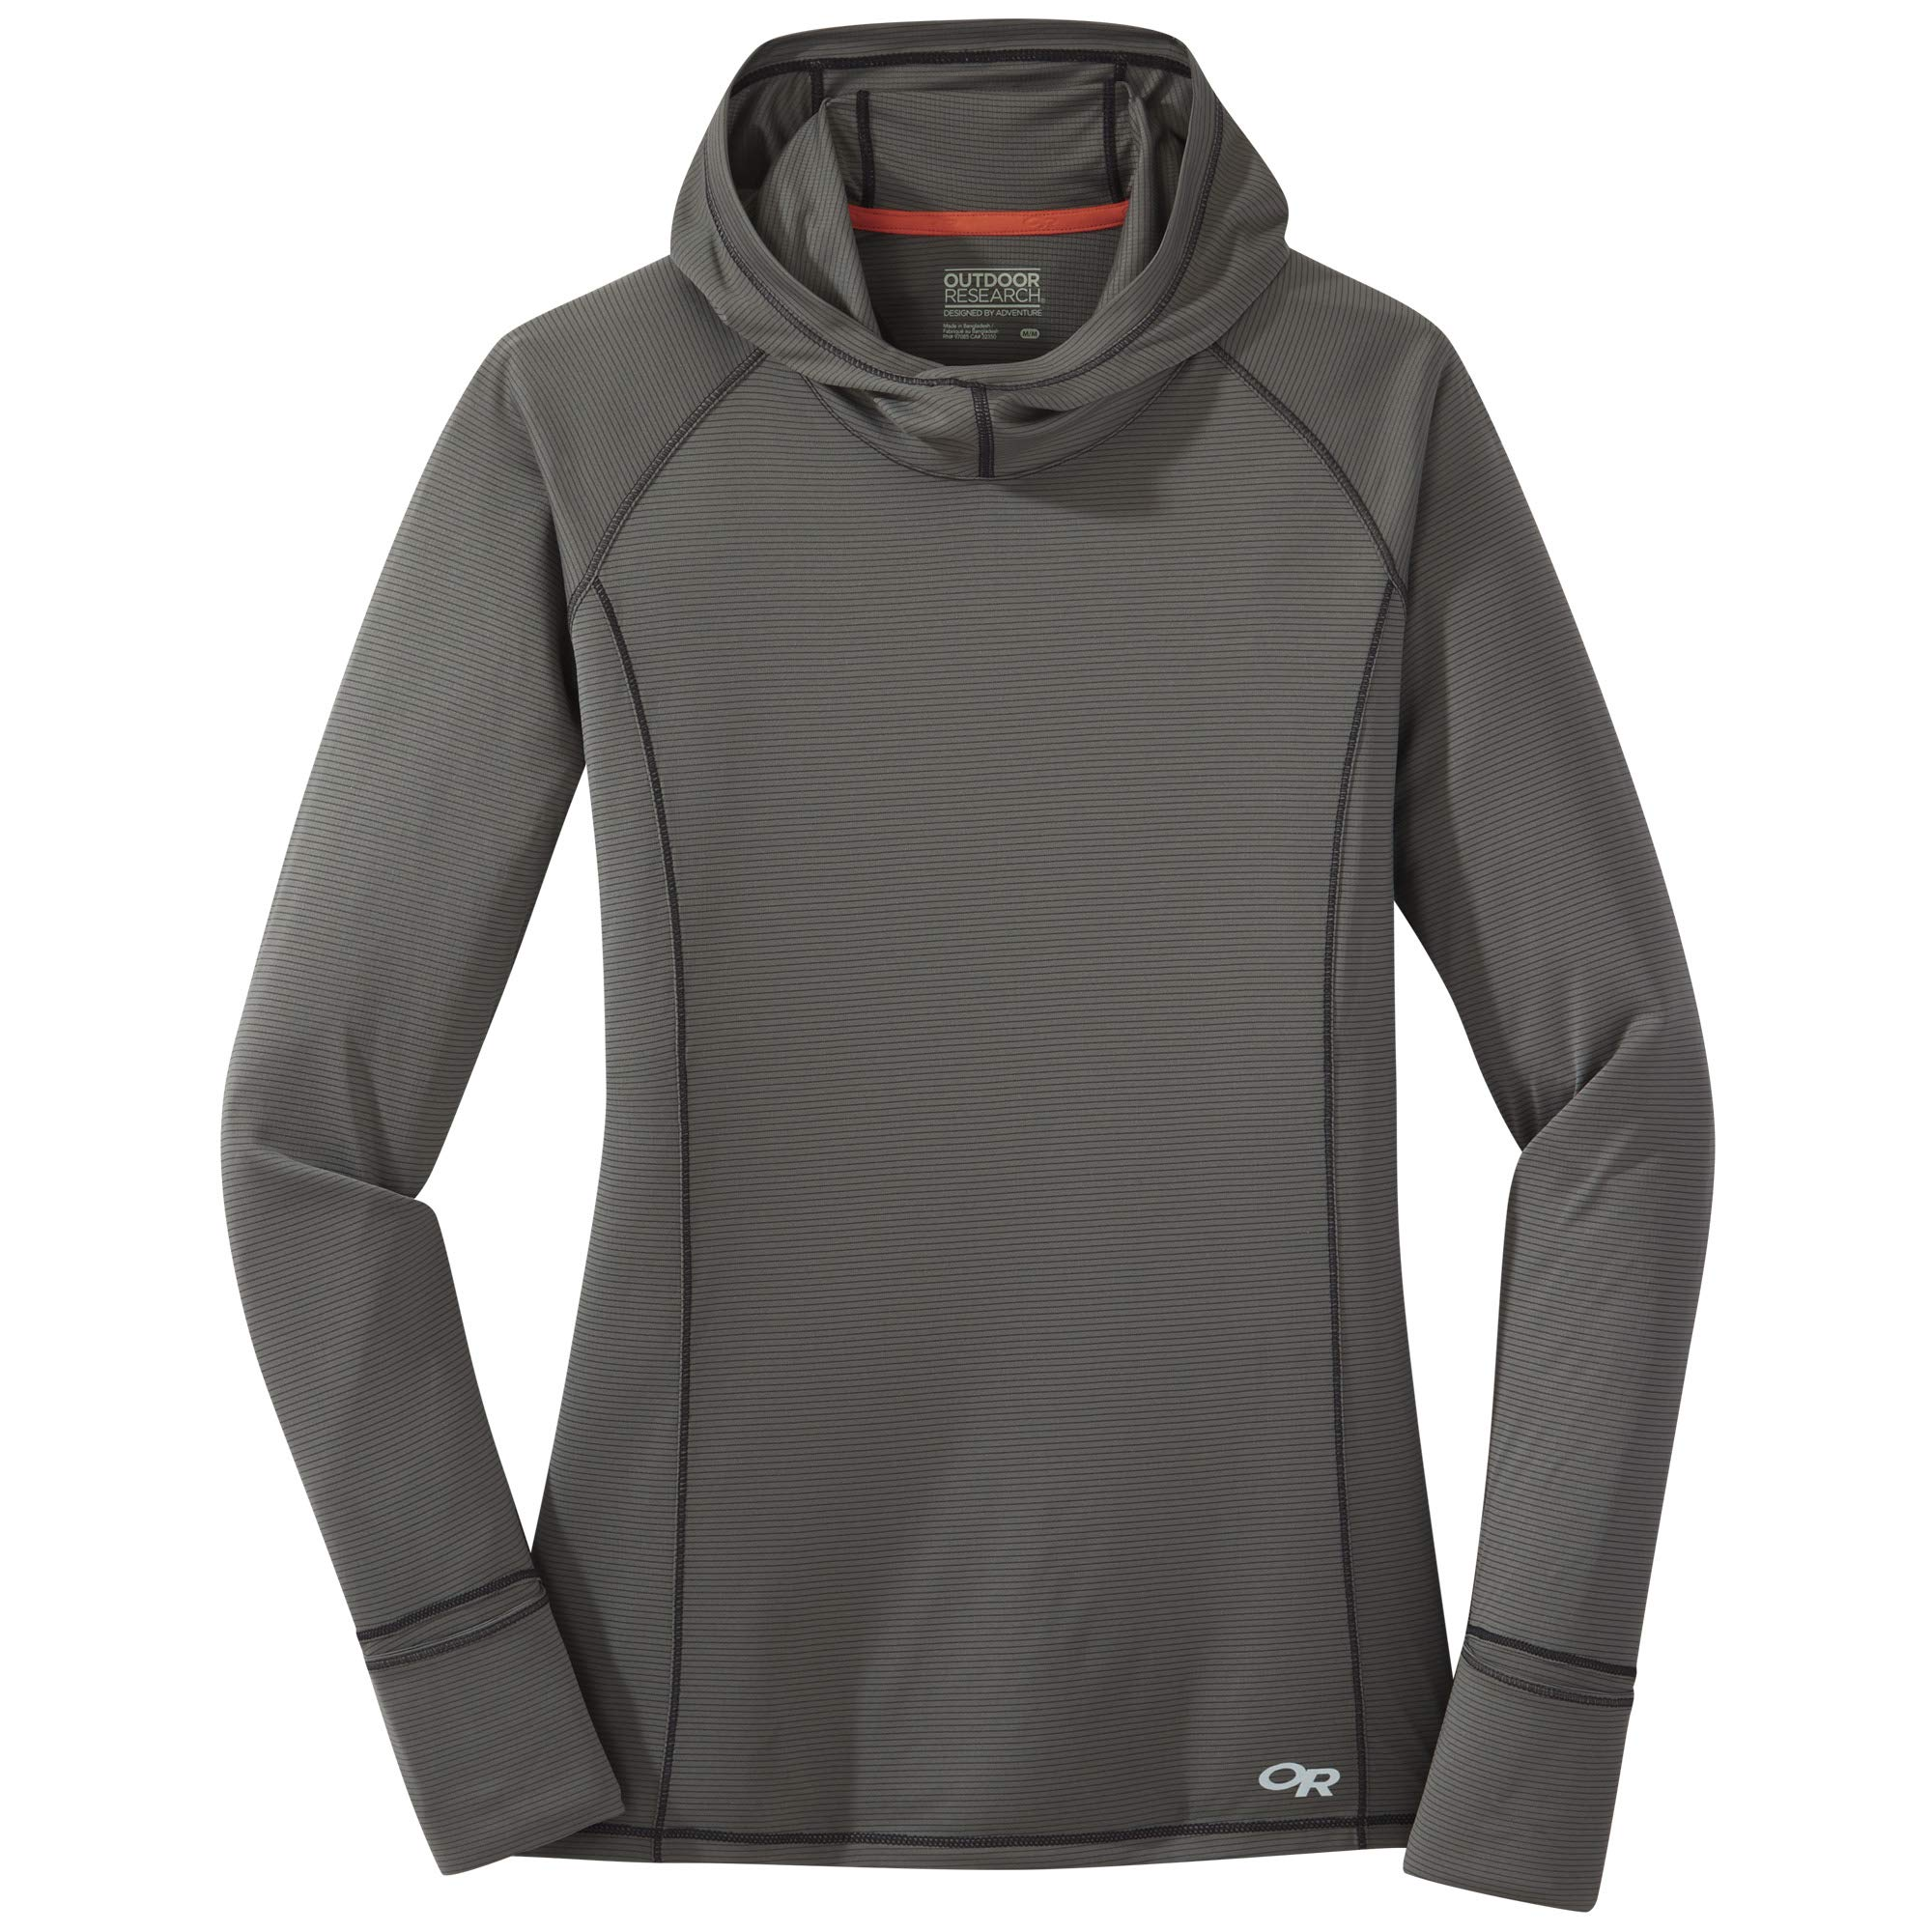 Outdoor Research Women's Echo Hoody, Pewter, Small by Outdoor Research